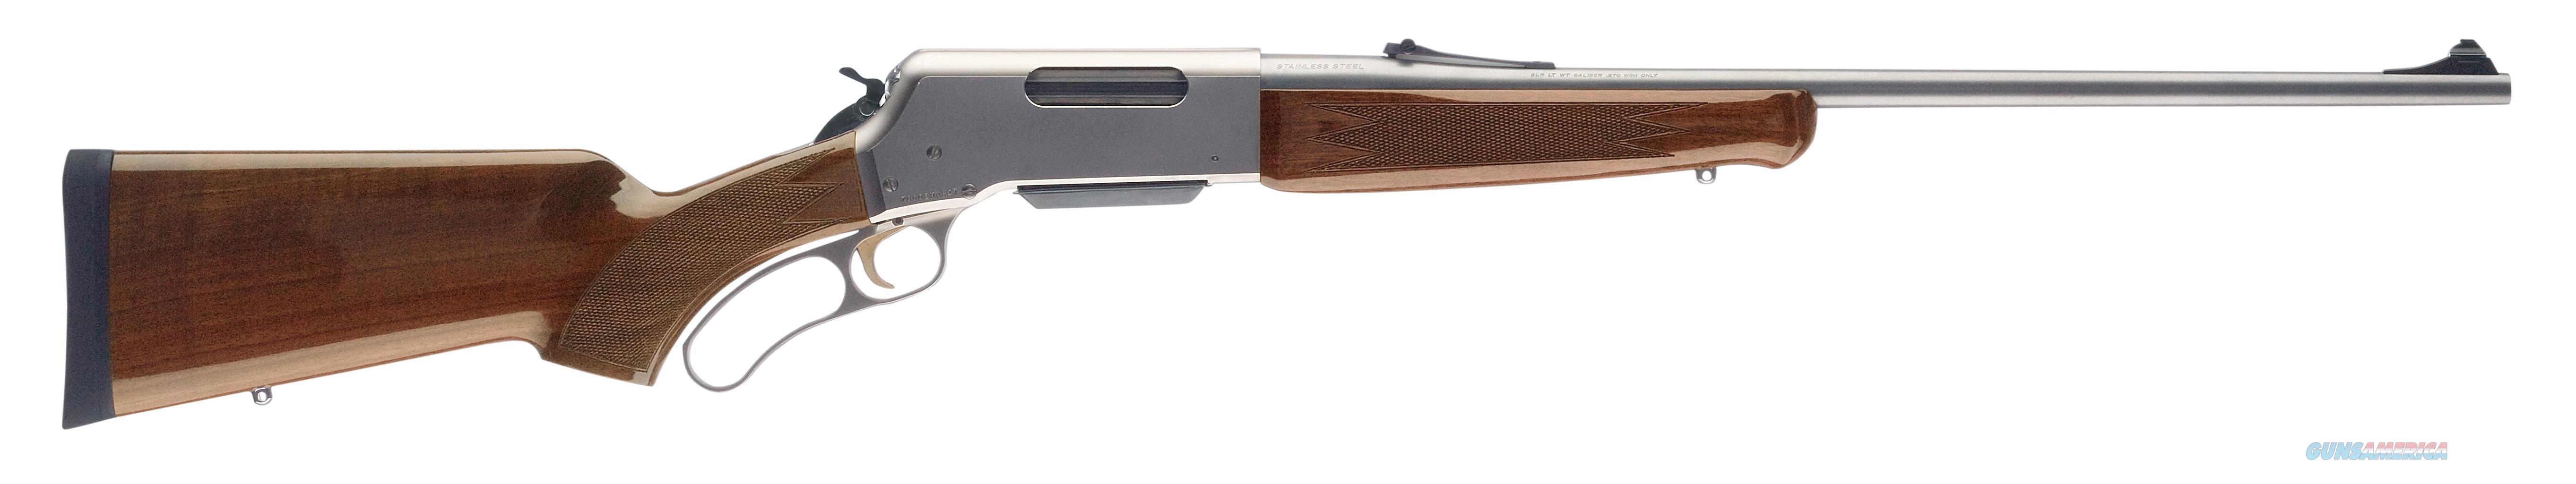 BROWNING BLR LTWT 243WIN WOOD SS PISTOL GRIP 034018111  Guns > Rifles > Browning Rifles > Lever Action